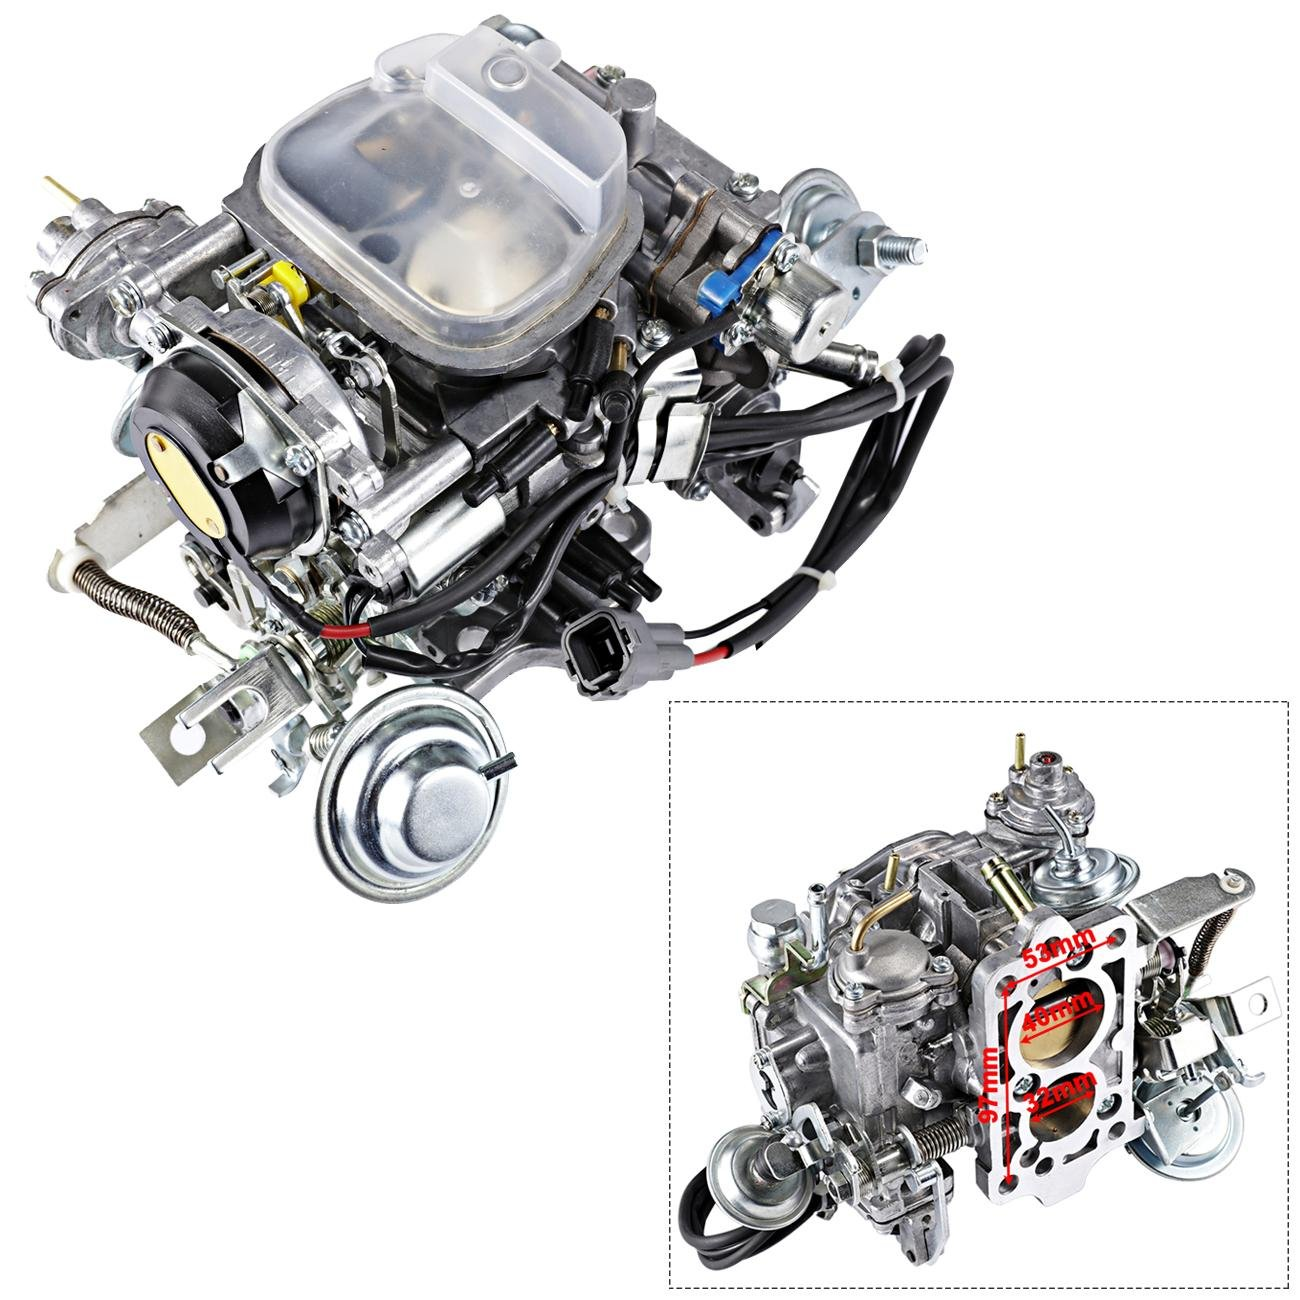 hight resolution of get quotations alavente 21100 35463 carburetor carb for toyota pickup trucks 1988 1990 22r engine